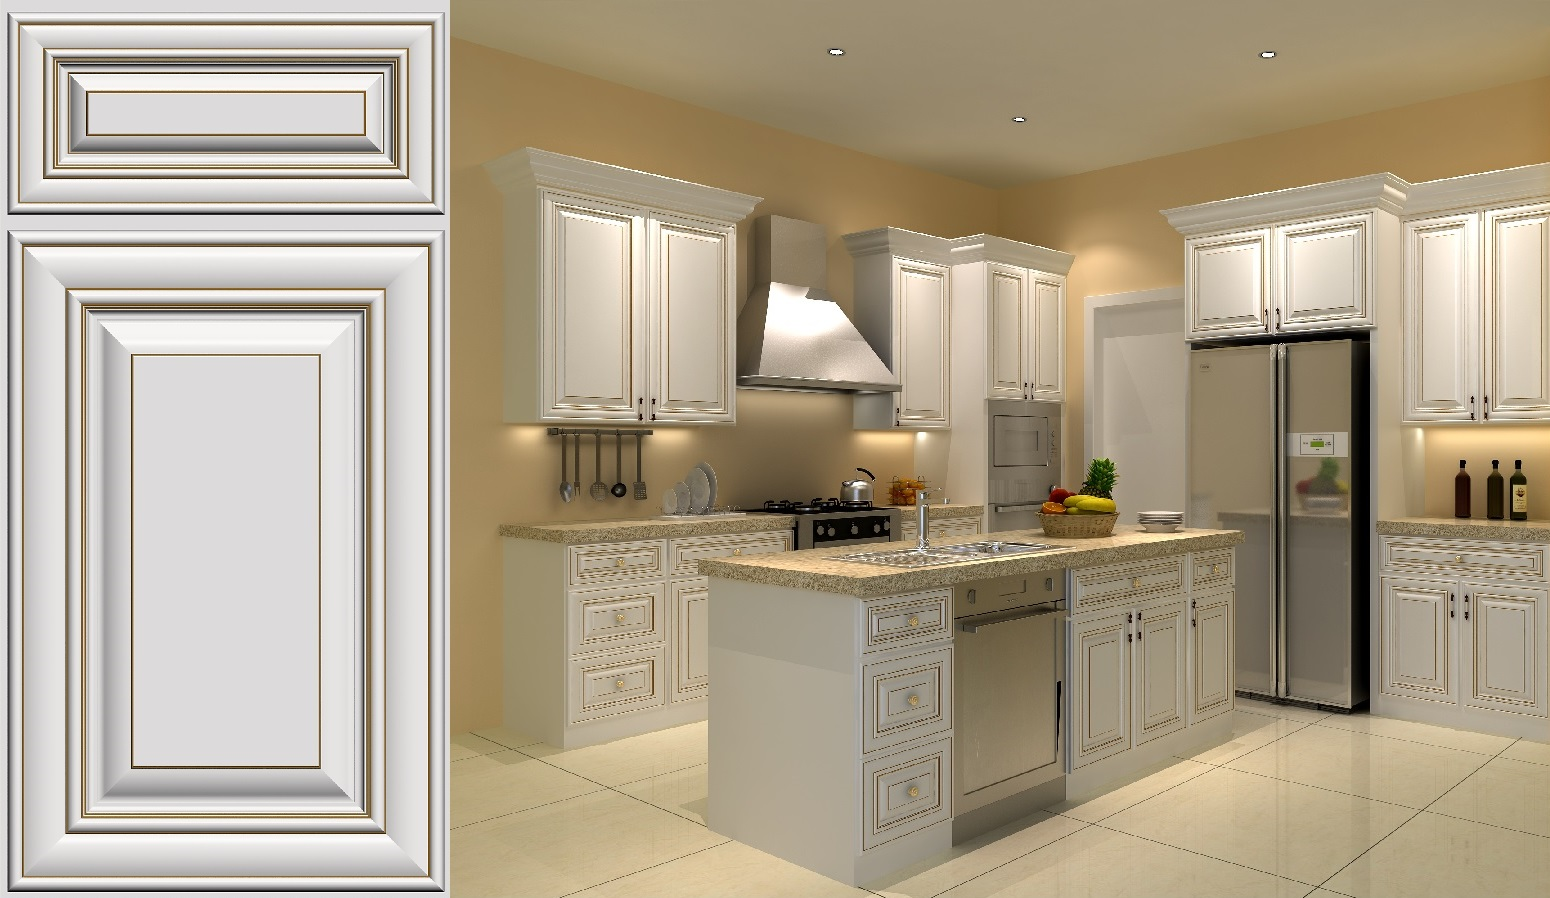 San Antonio Framed Birch Cabinets Kitchen Remodeling Contractors Stone Oak Affordable Bathroom Remodeling Service Alamo Heights Arlington Oatmeal Framed Birch Cabinets ProCraft Cabinet Installation Boerne Kitchen Cabinet Store Helotes Bathroom Cabinet Store Balcones Heights